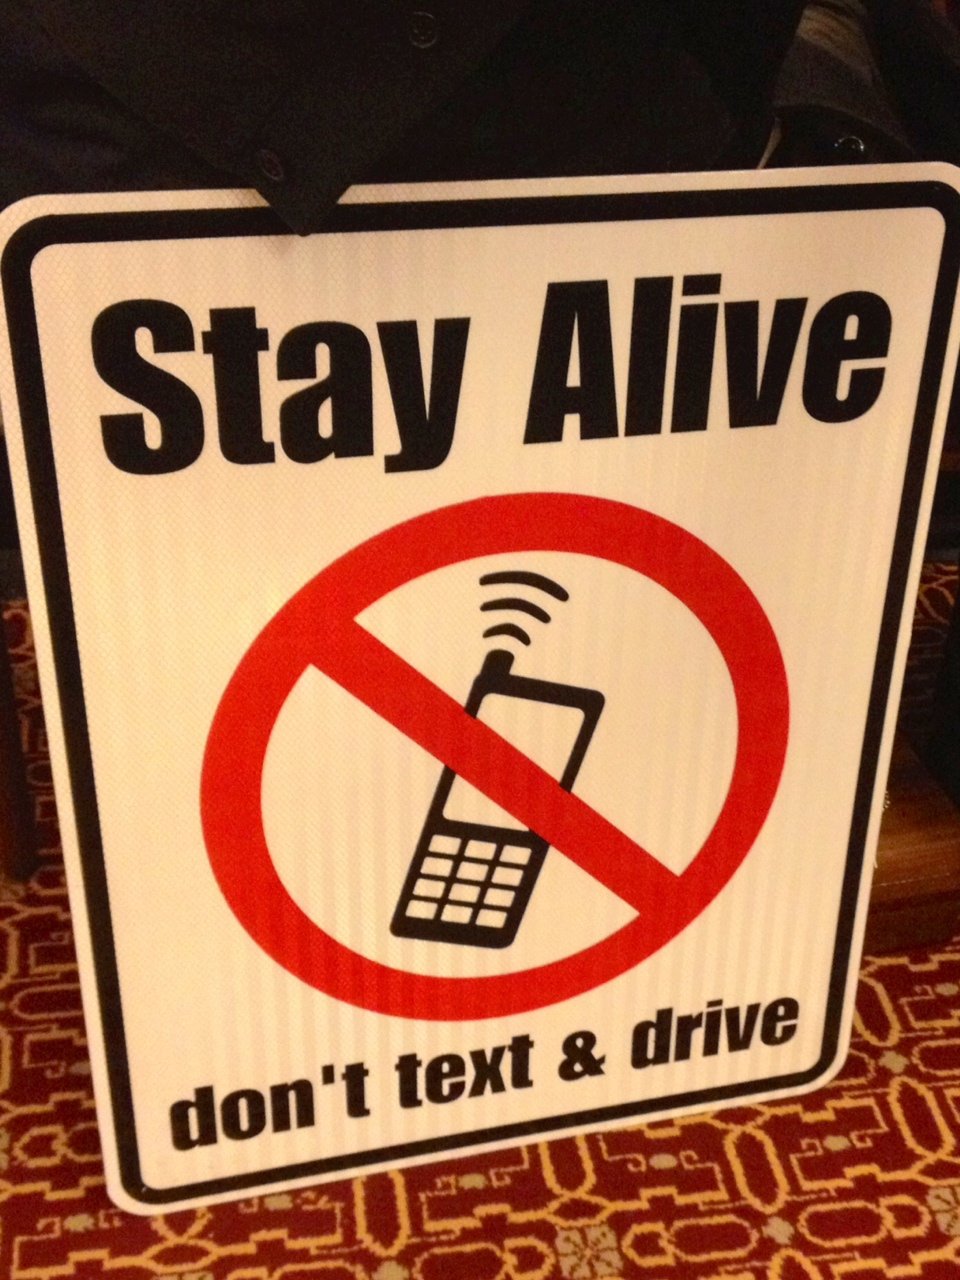 Don't text and drive sign bill clears Assembly panel